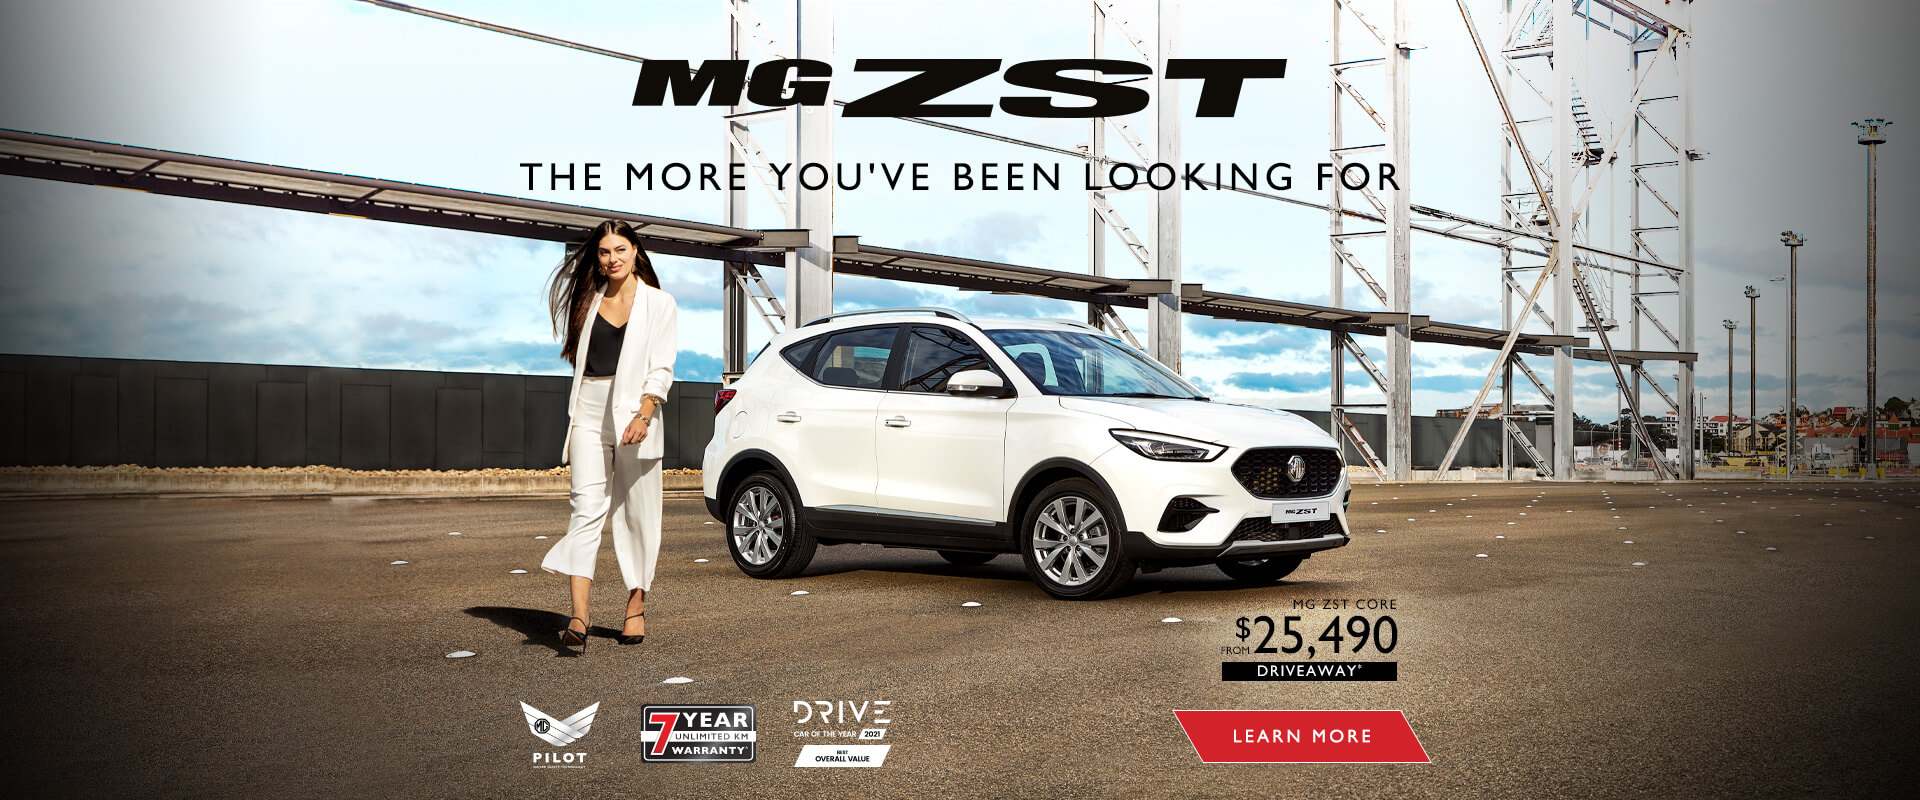 MG ZST. The more you've been looking for.